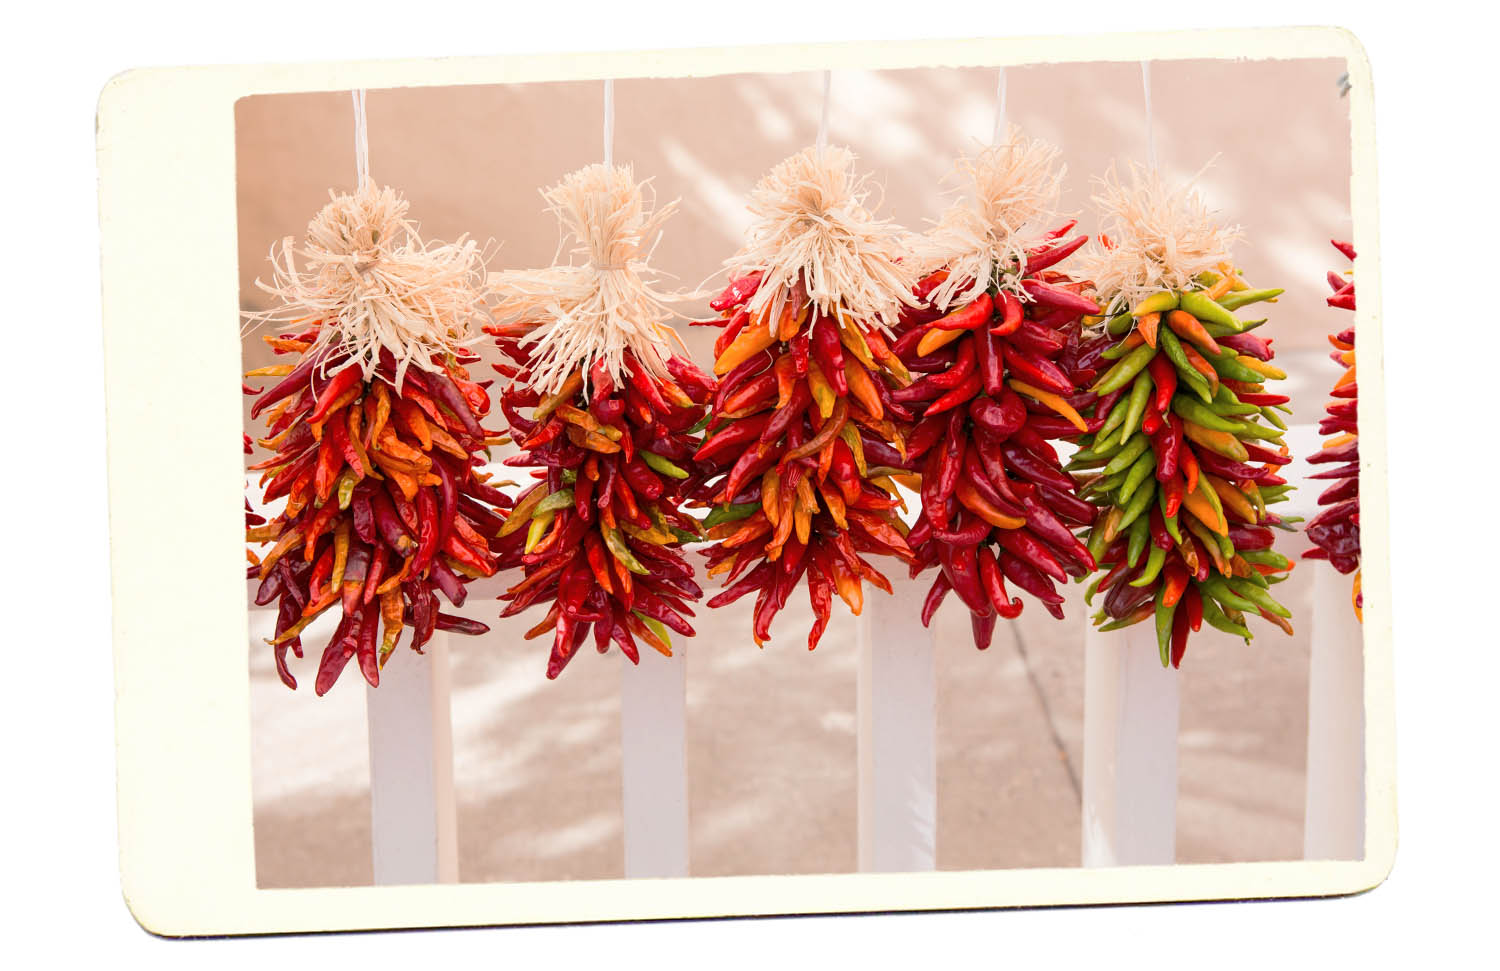 Drying Chili Peppers Santa Fe New Mexico